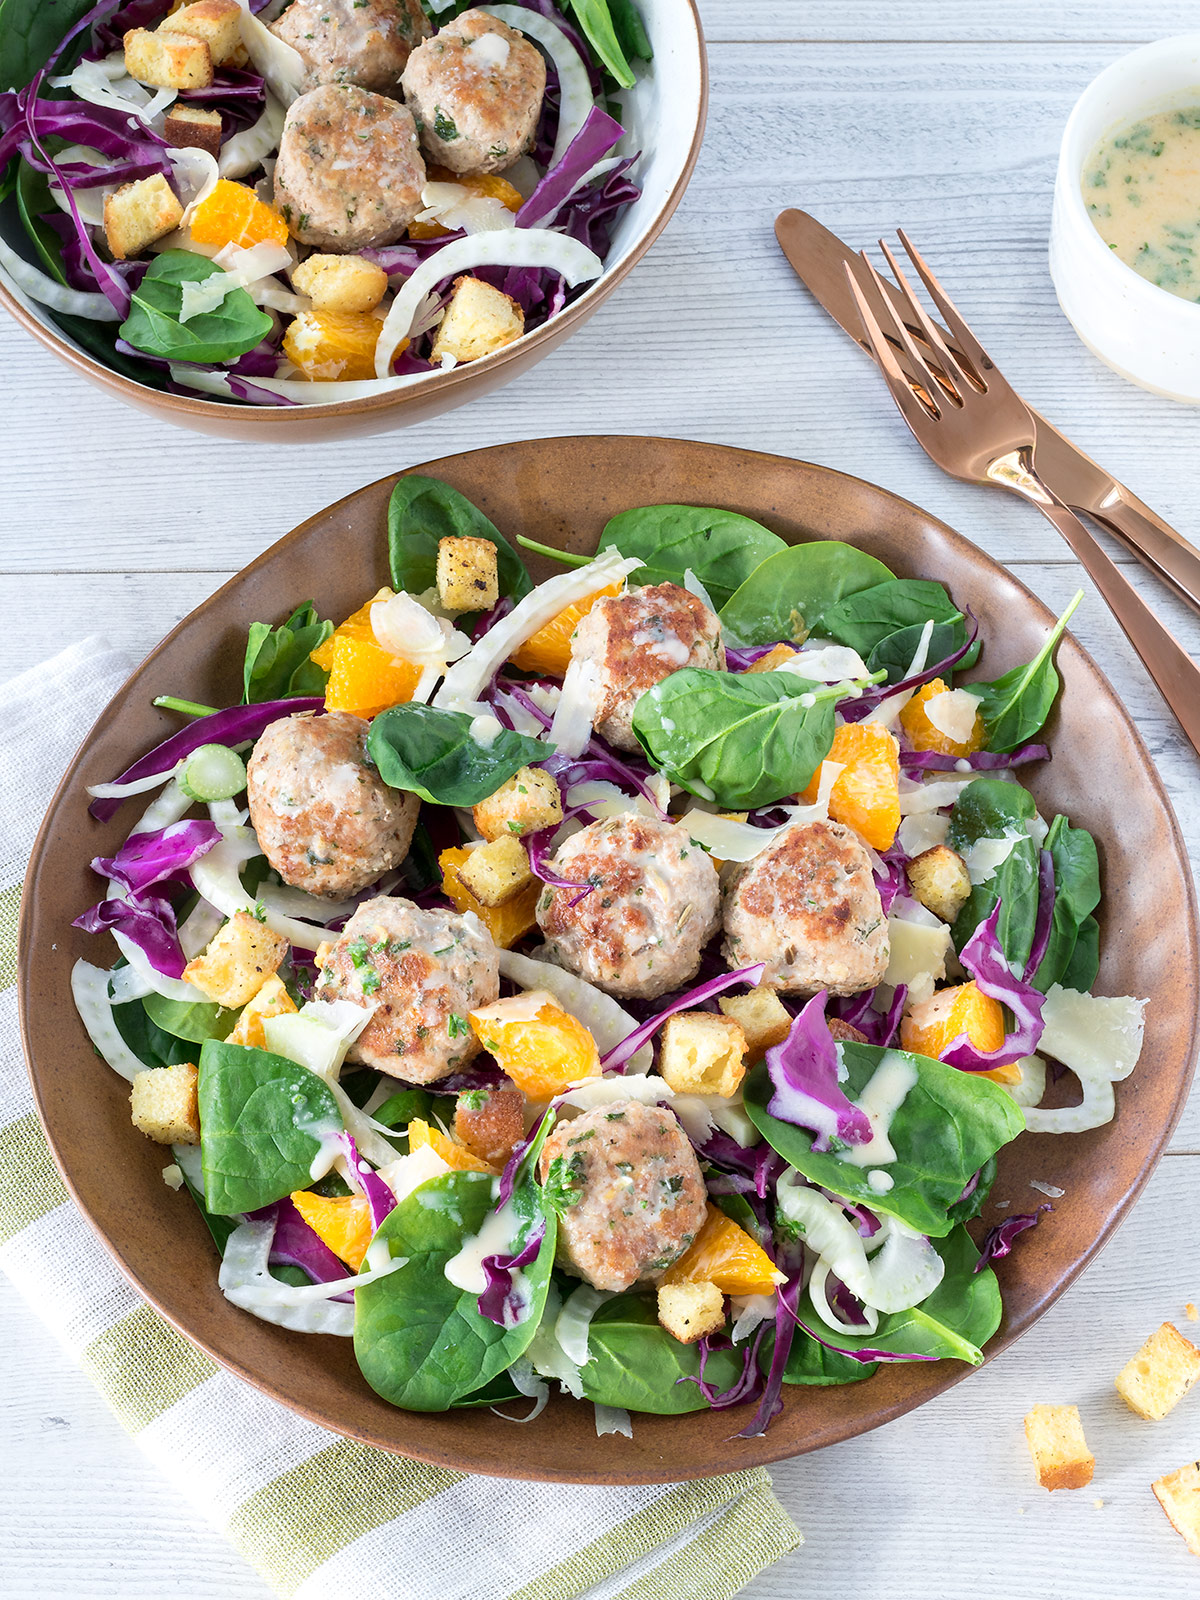 These pork and fennel meatball salads are packed with a delicious combination of flavours. An interesting and satisfying lower carb meal.